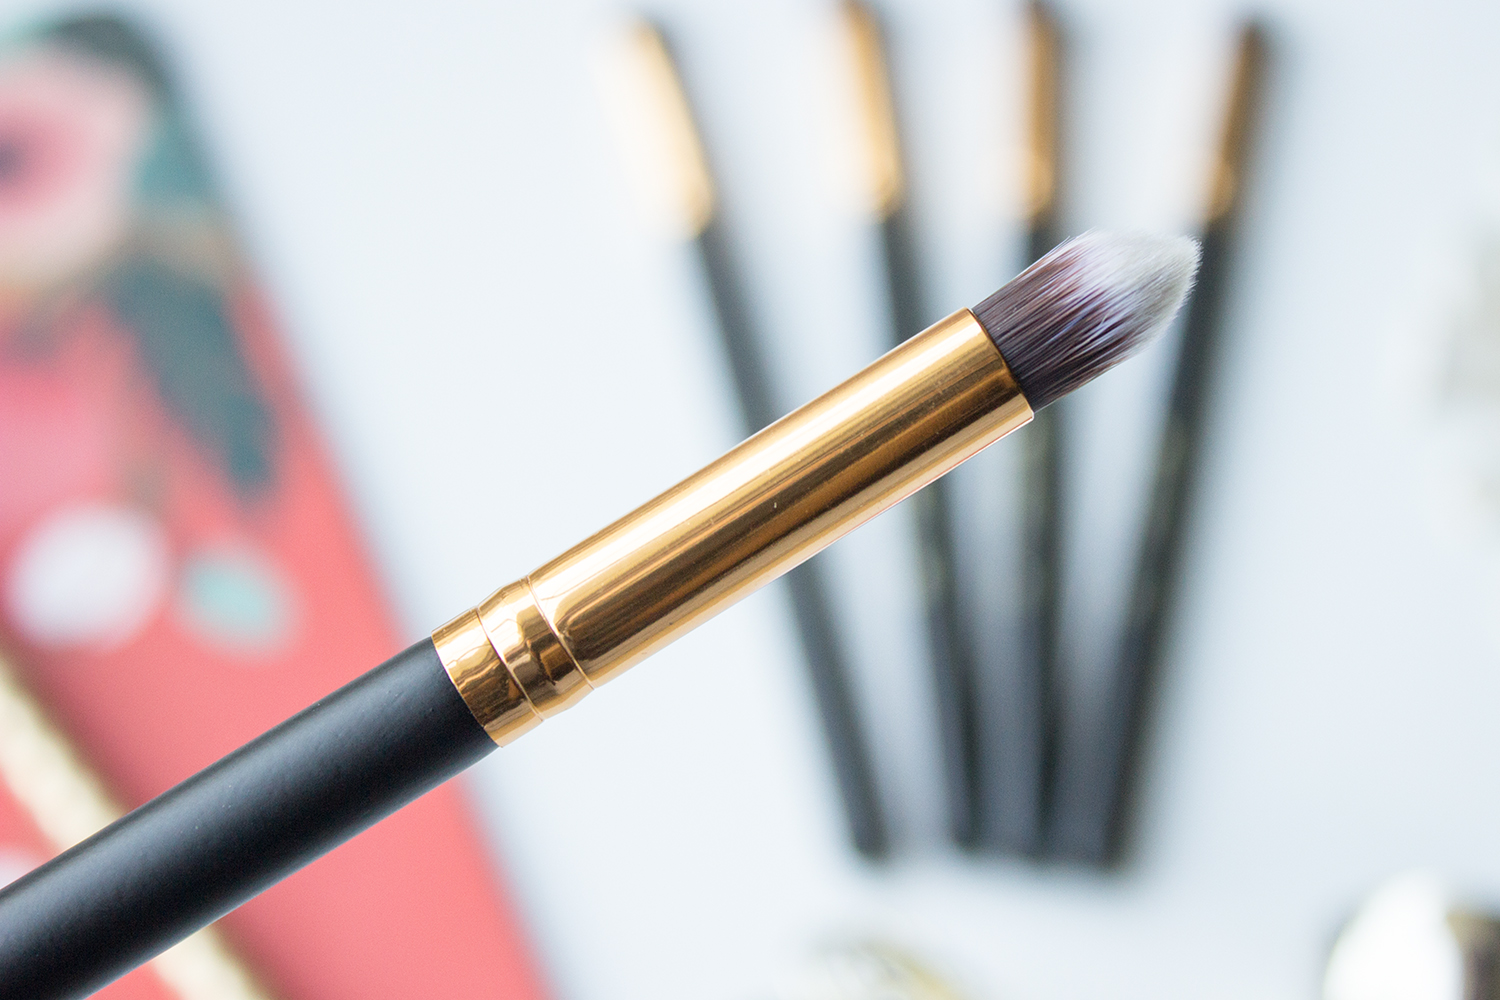 BH Cosmetics Sculpt & Blend Small Tapered Contouring Face Brush